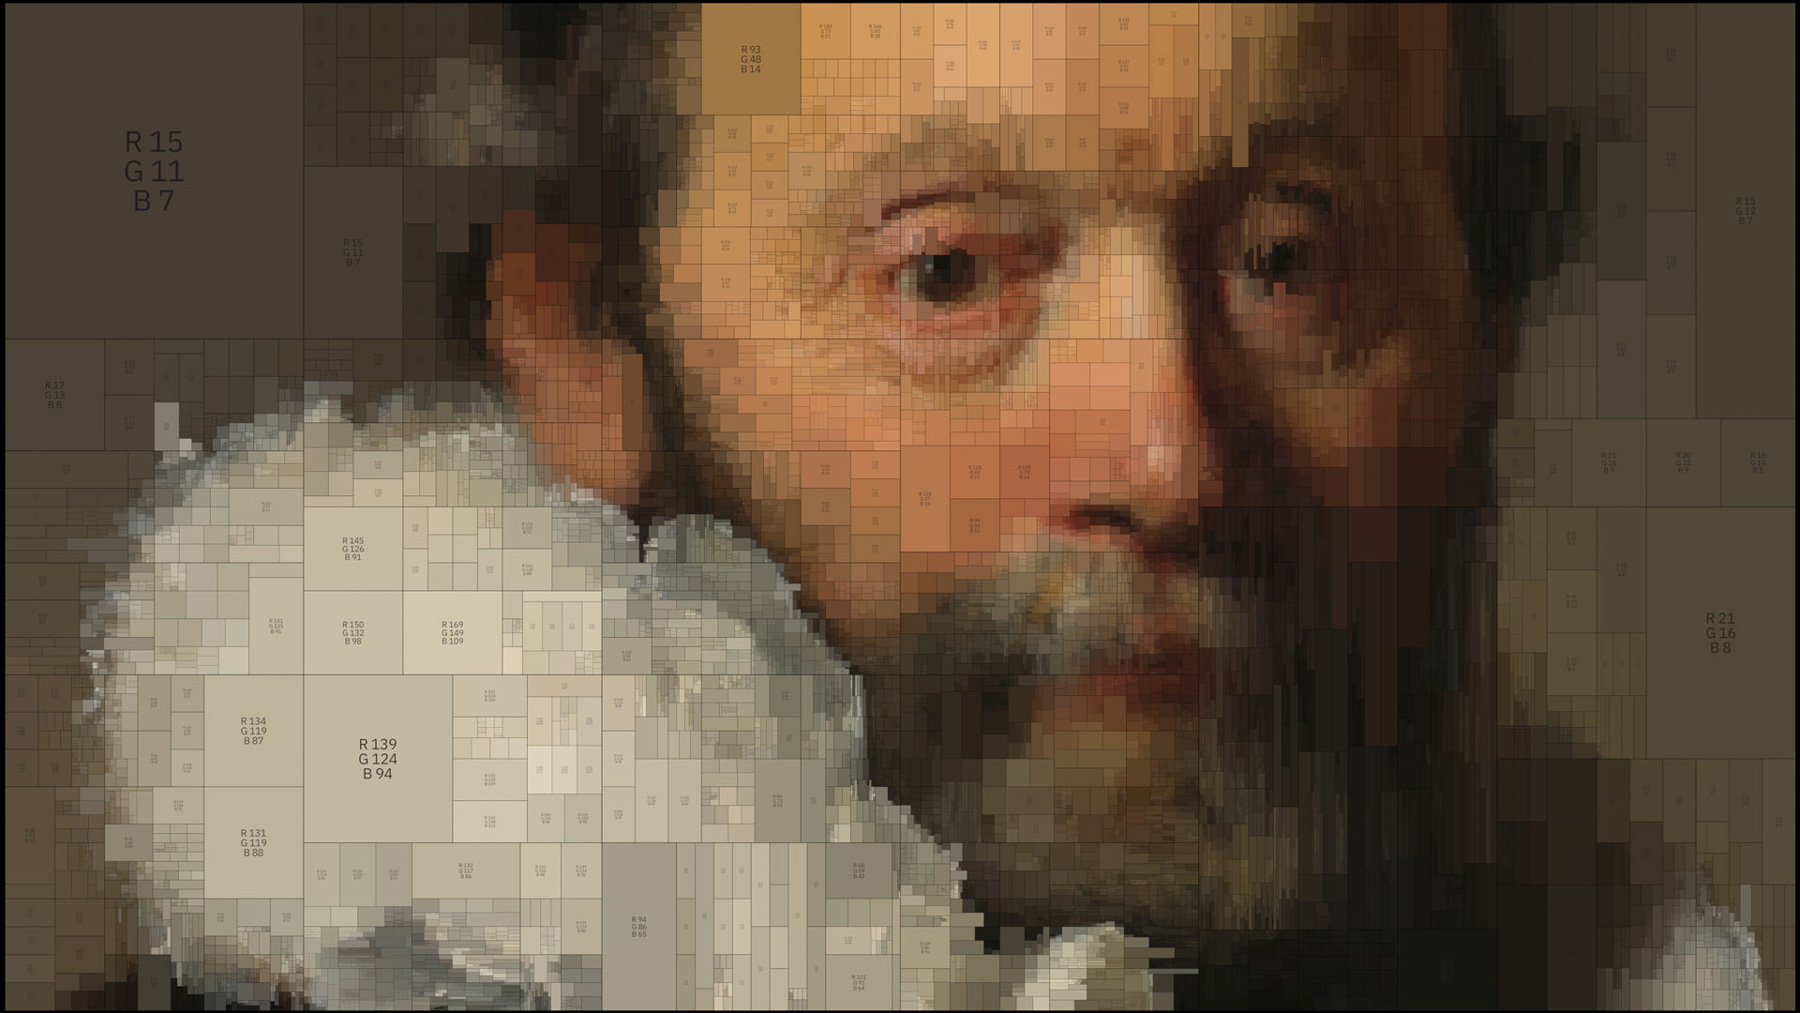 Digital Interpretations of Classical Paintings Using Algorithms